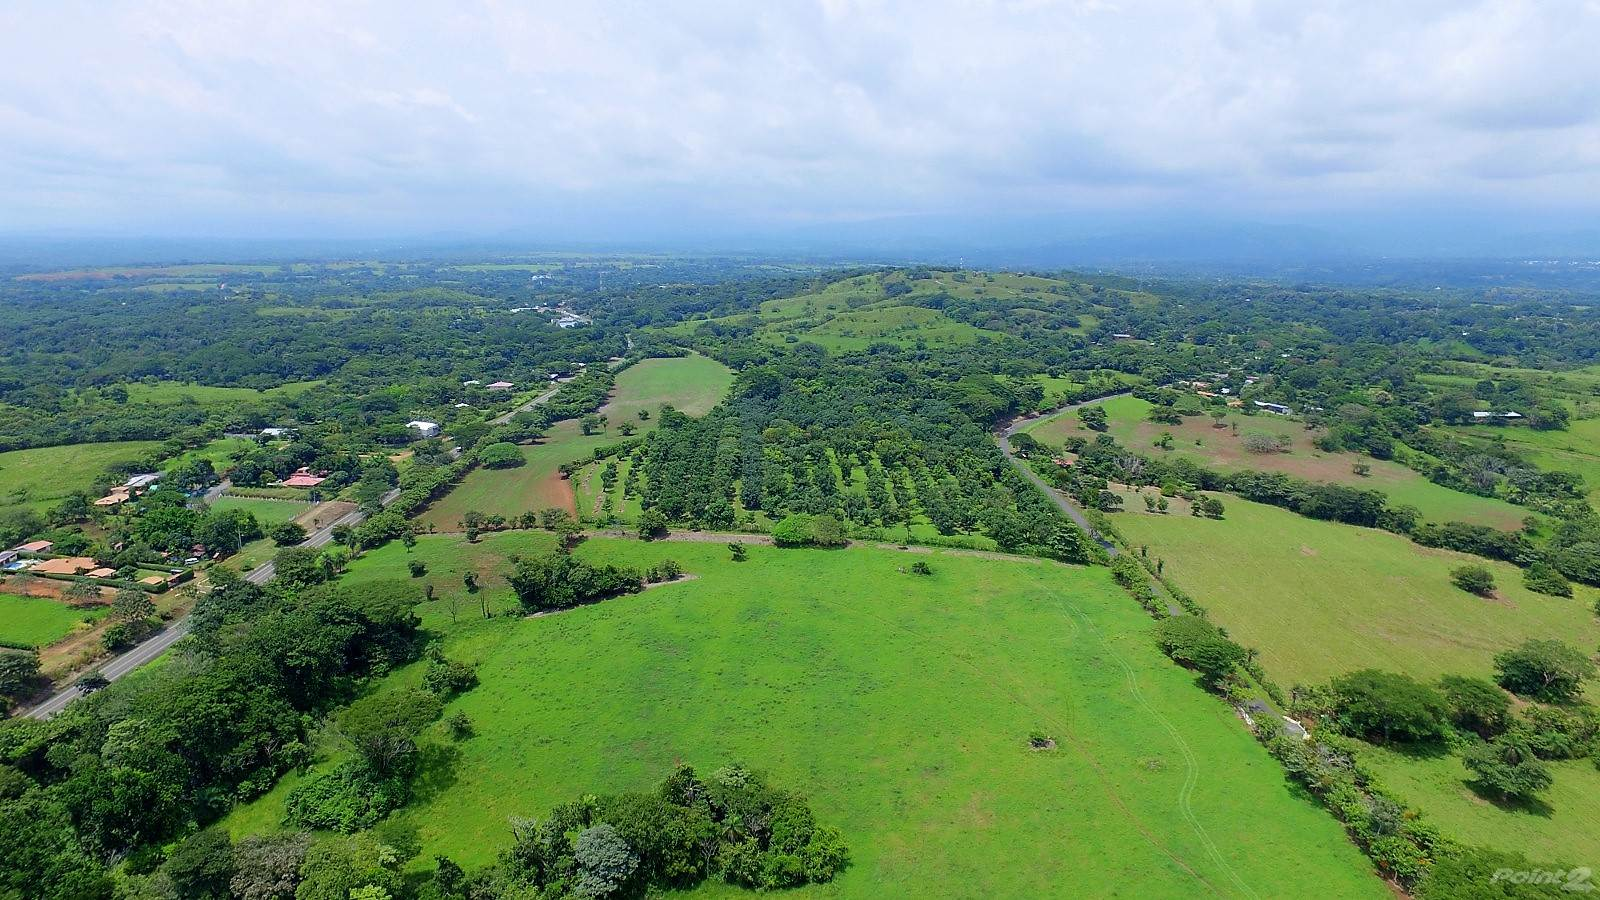 Fazendas & Granja à venda em RA1893 Land Investment close to future Int'l airport Orotina @ only 30min drive from Jaco, Orotina Coyolar, Alajuela ,23001  , Costa Rica